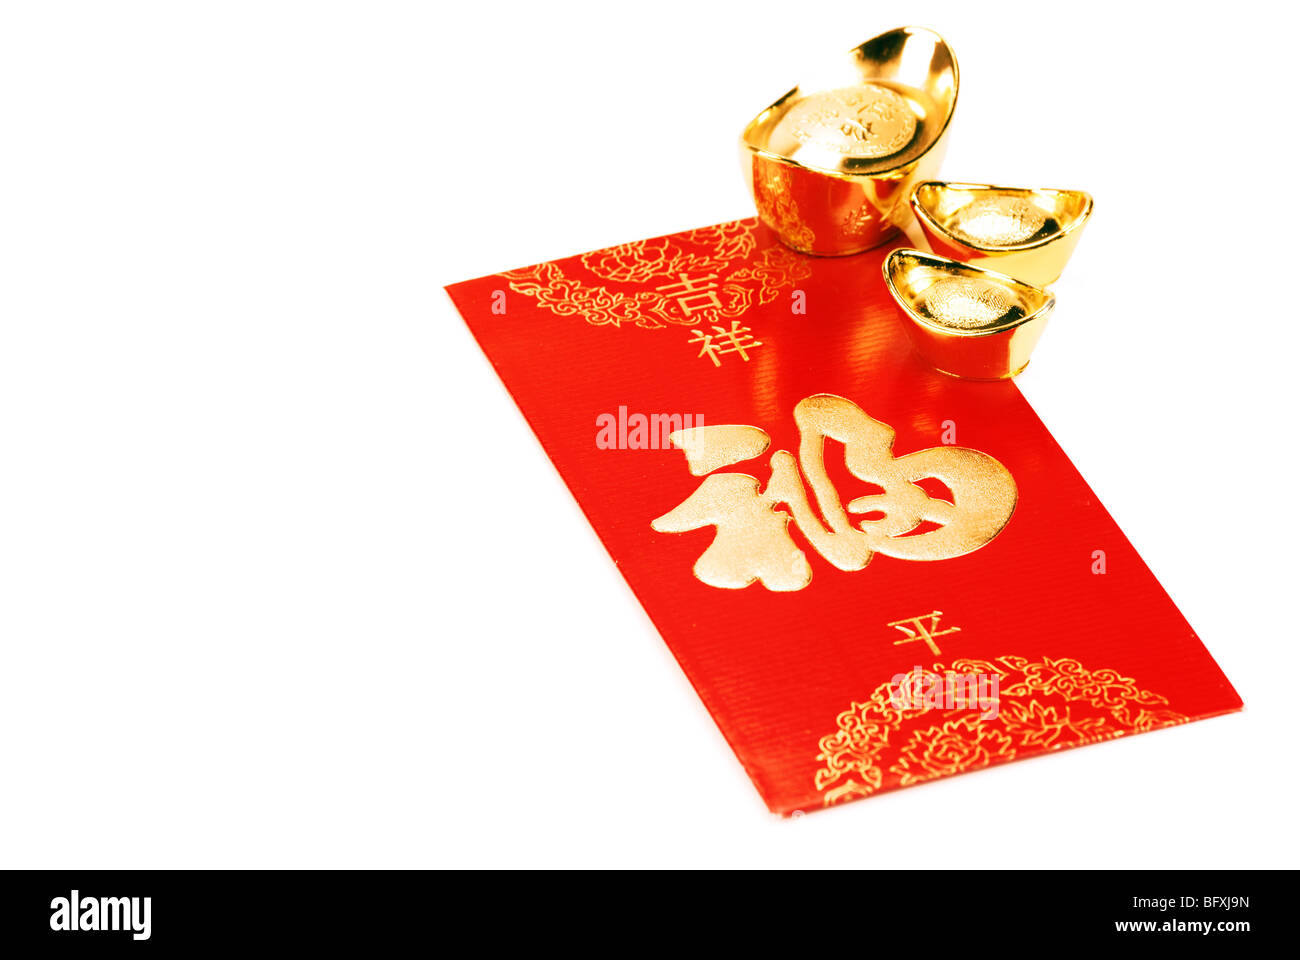 Red envelope and gold ingot,isolated on white. - Stock Image